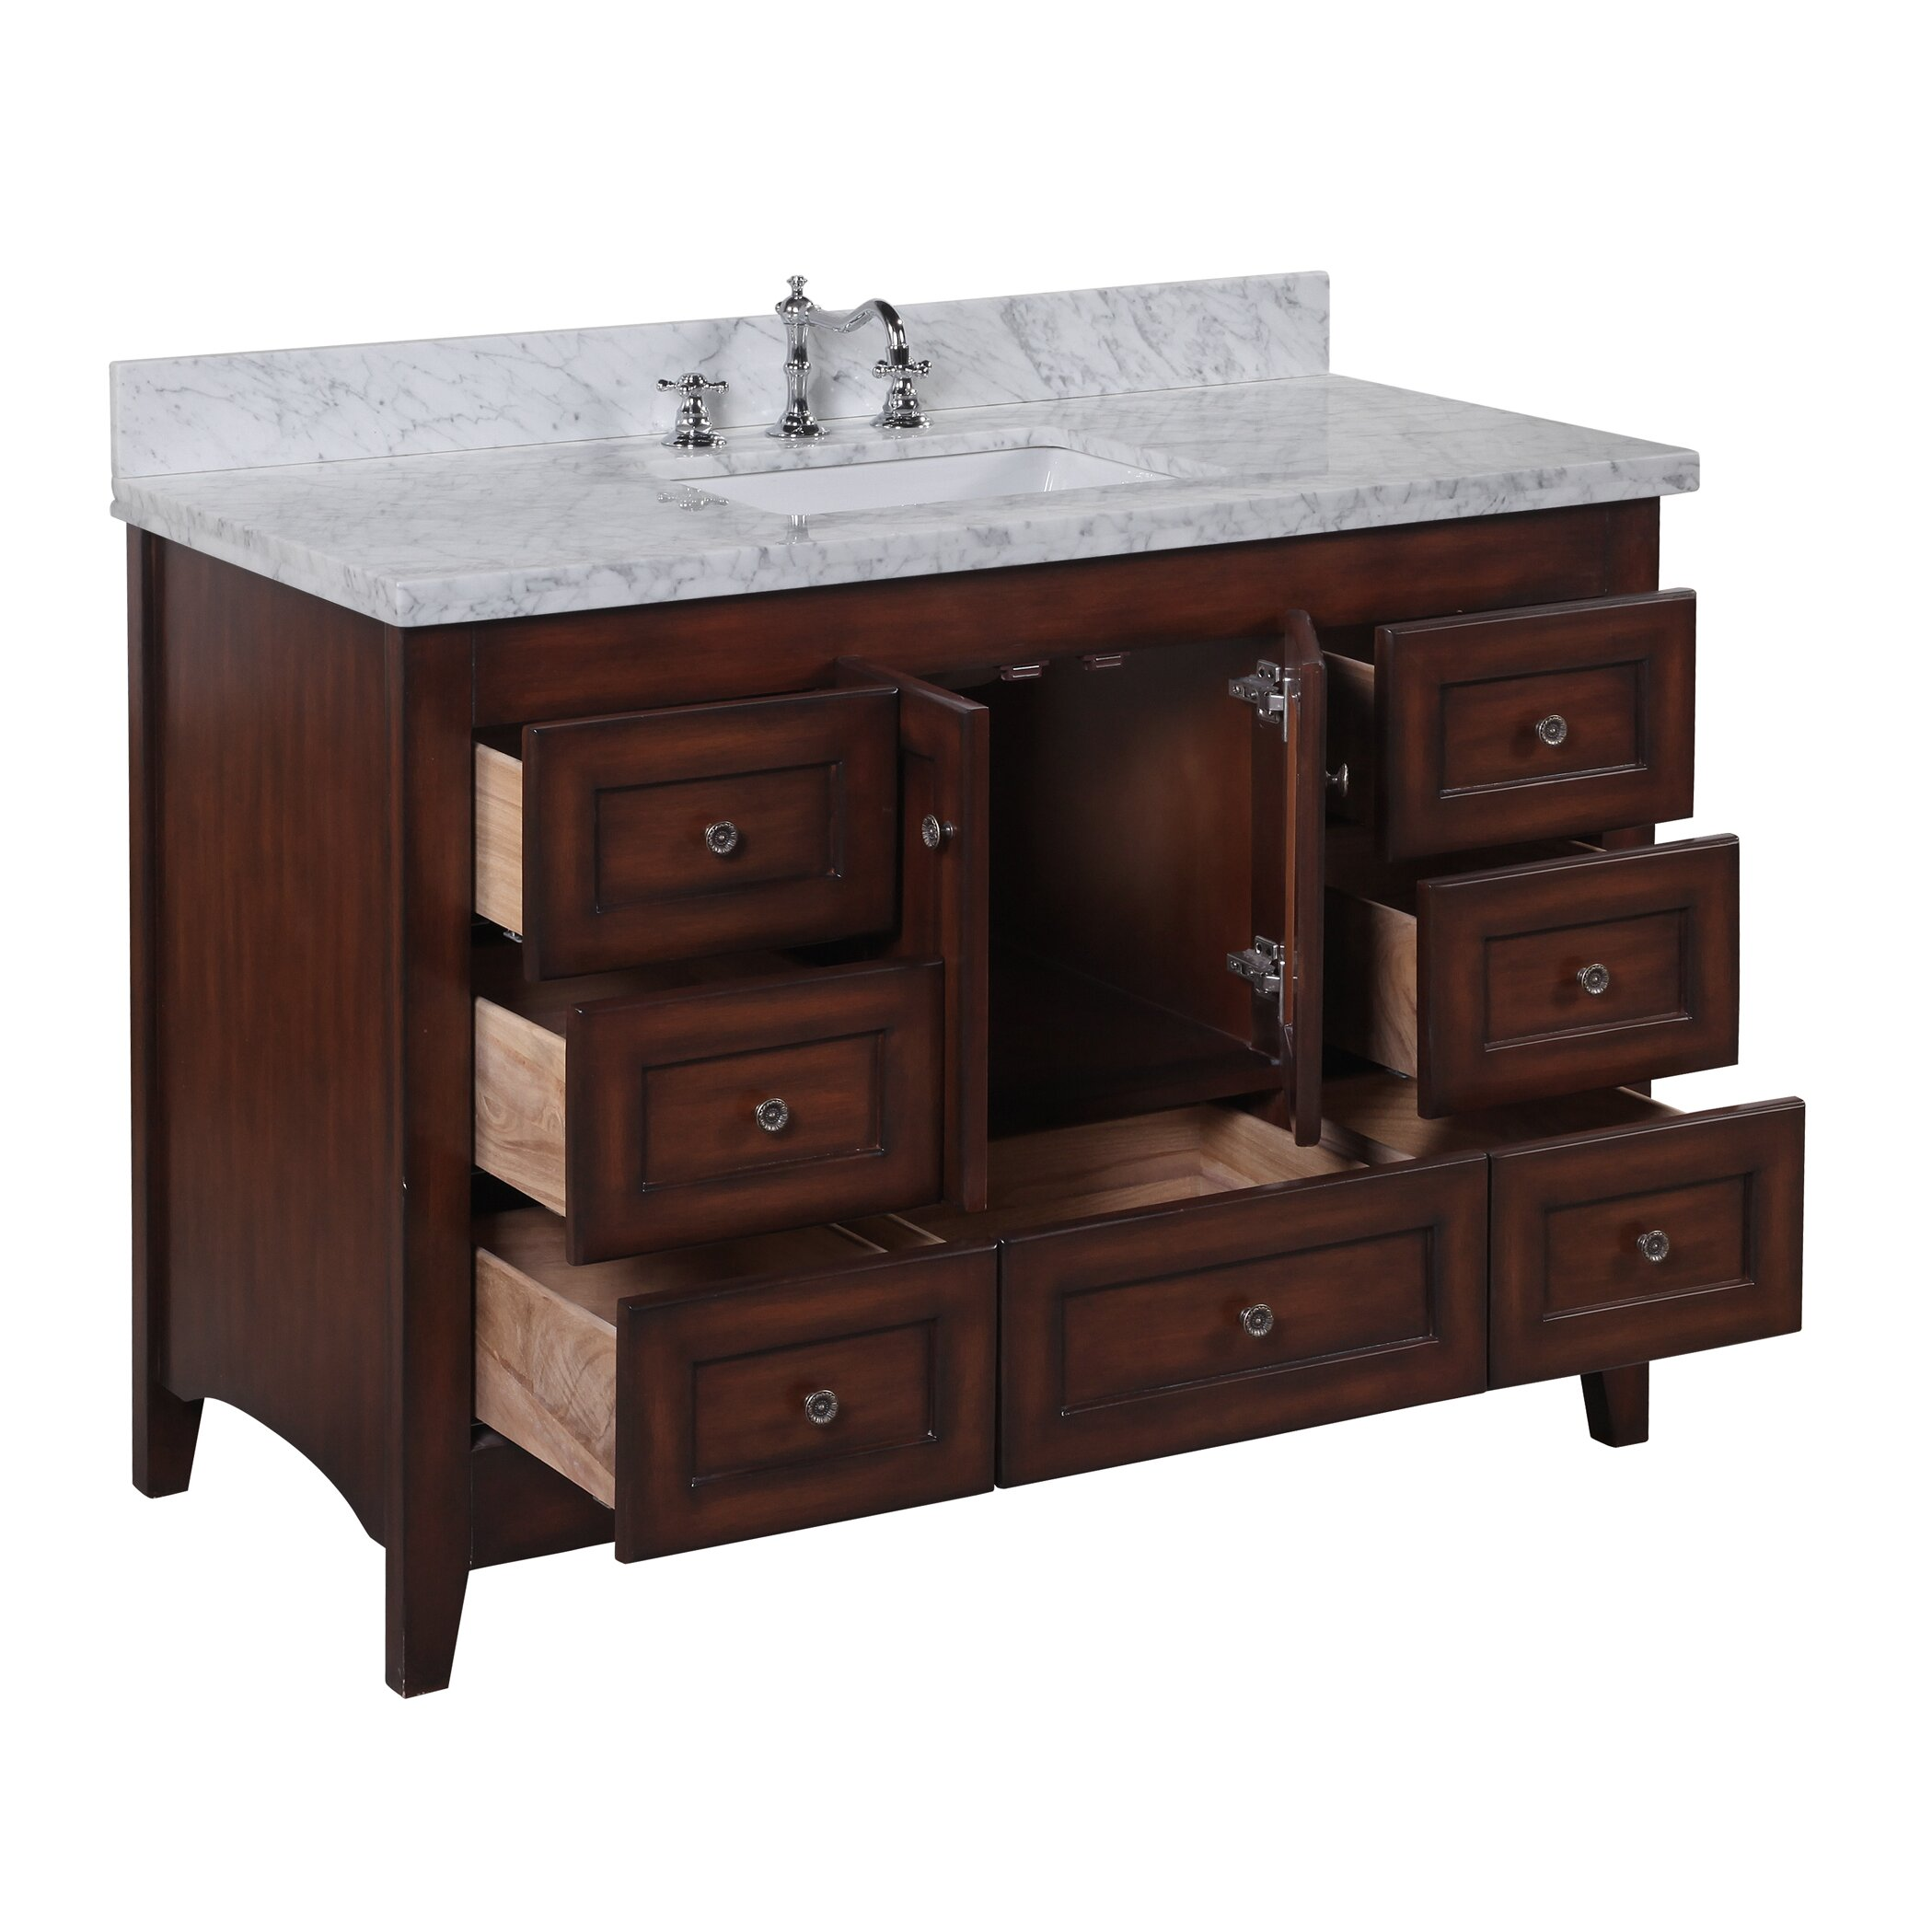 "Wayfair Bathroom Vanity >> KBC Abbey 48"" Single Bathroom Vanity Set & Reviews 